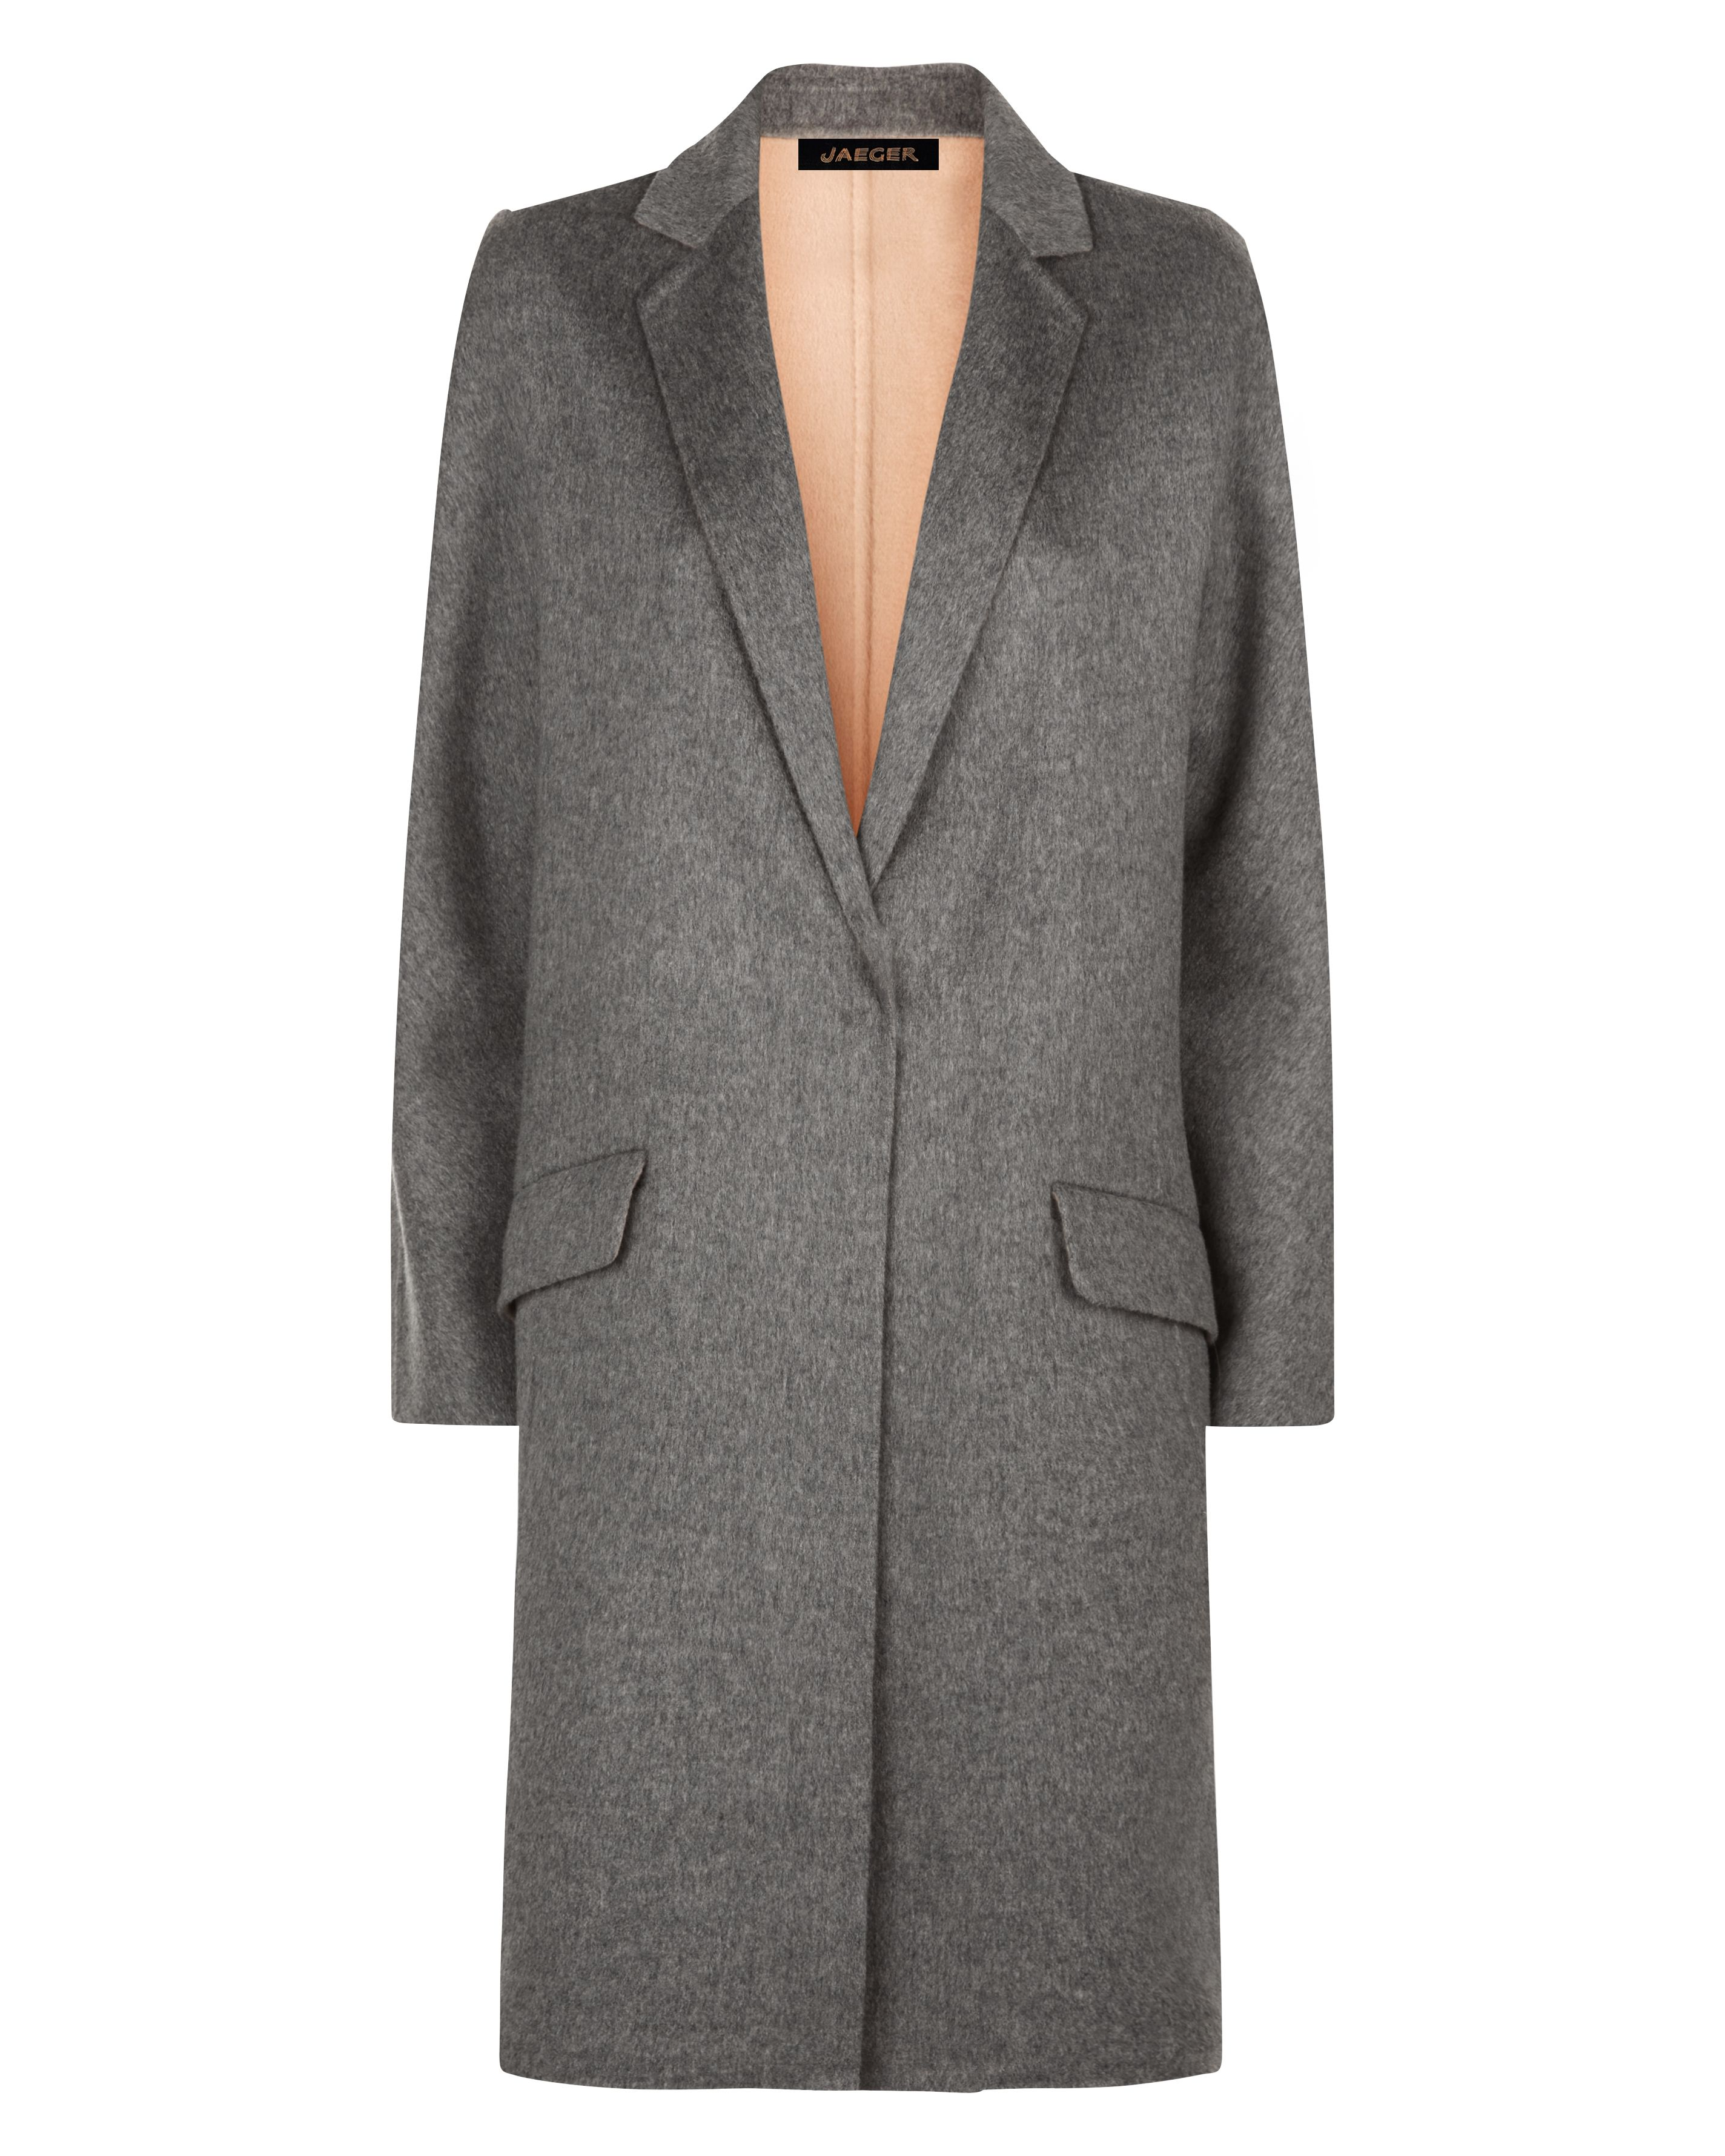 Jaeger Wool Double-Faced Angled Coat, Grey